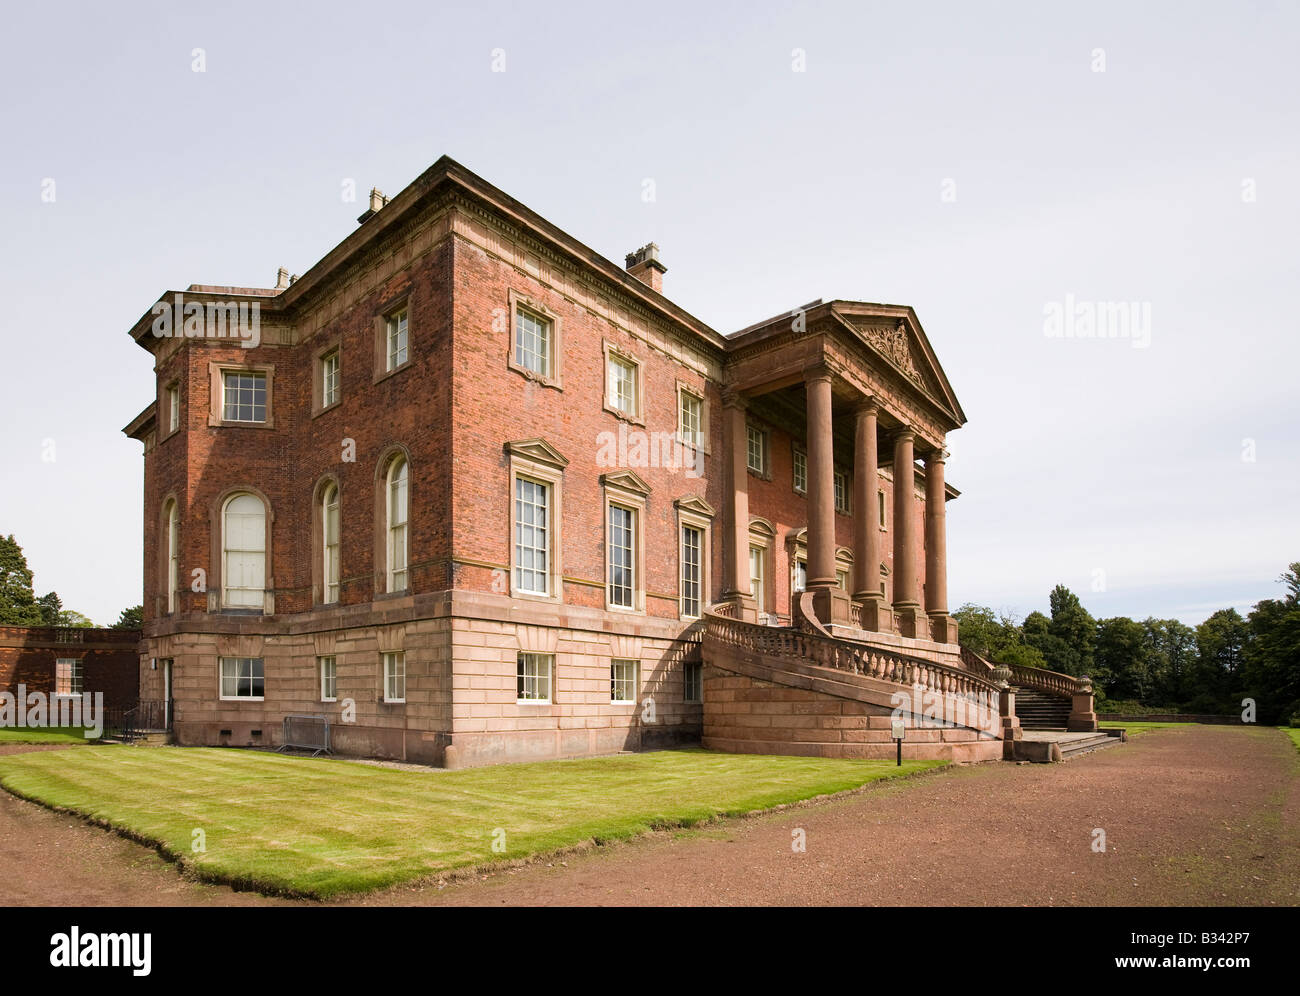 UK Cheshire Knutsford Tabley House 18th century mansion designed by John Carr of York 1769 - Stock Image